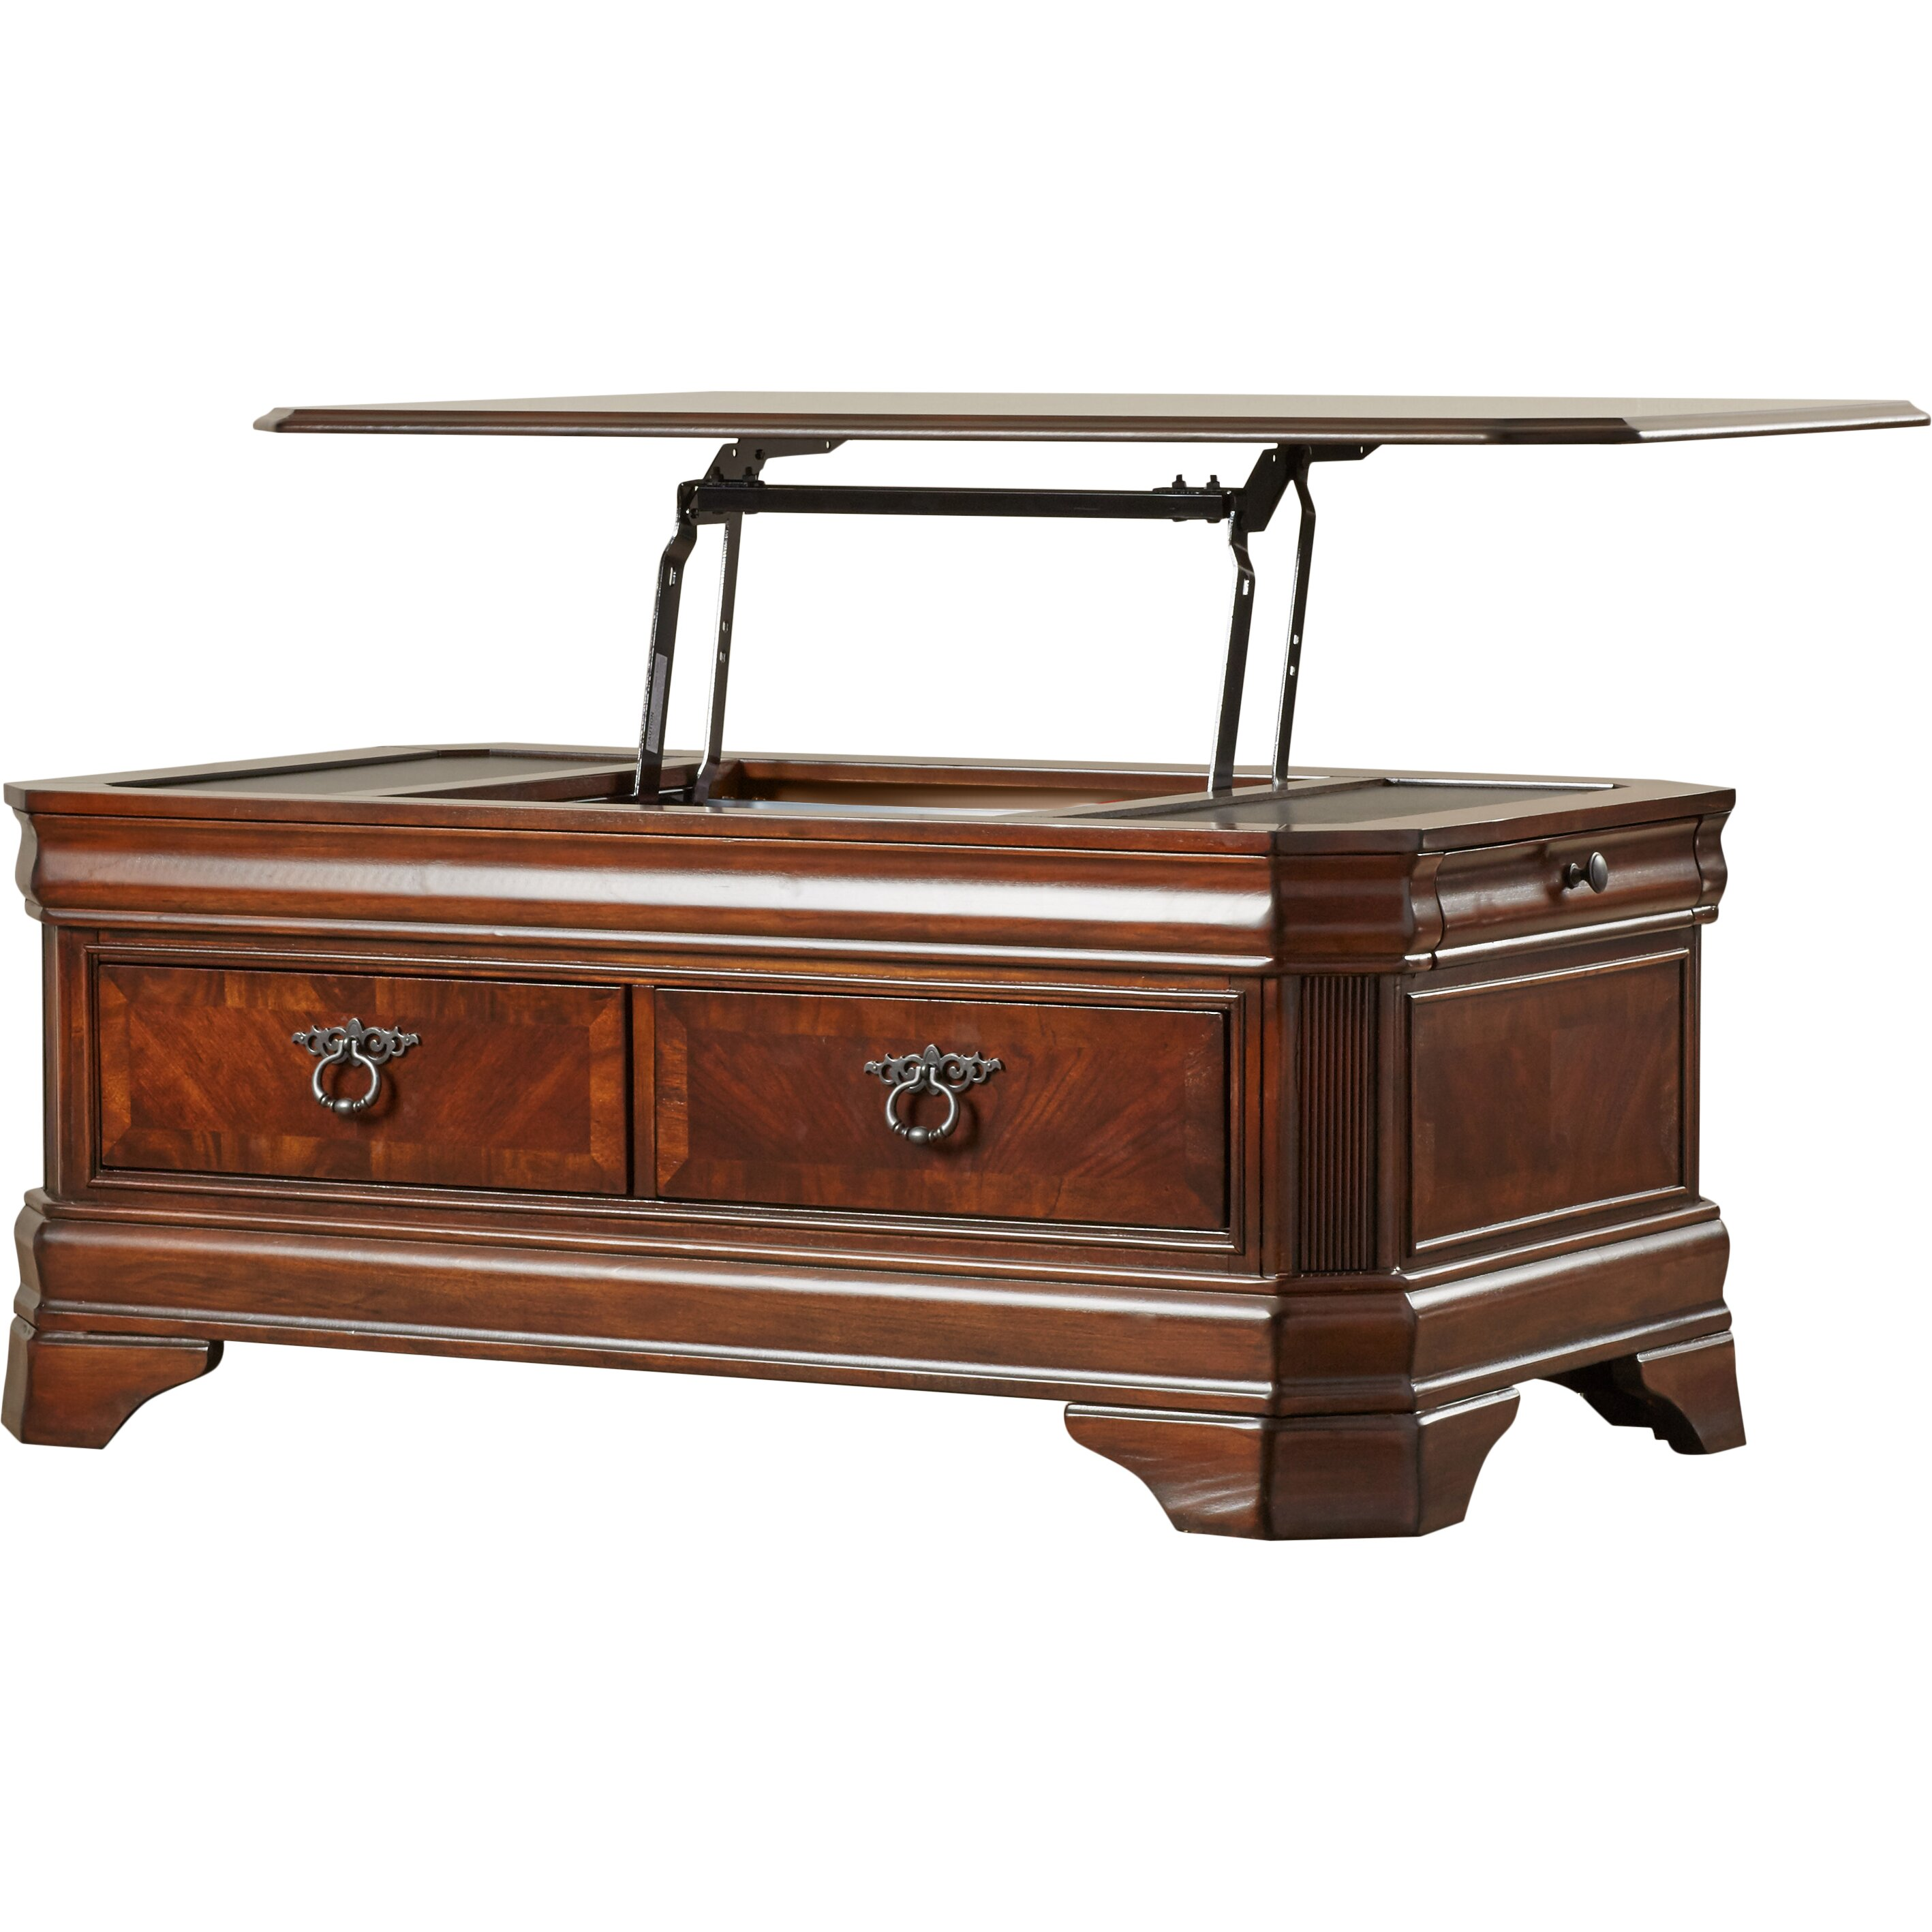 Barrett Trunk Coffee Table With Lift Top: Darby Home Co Busse Trunk Coffee Table With Lift Top